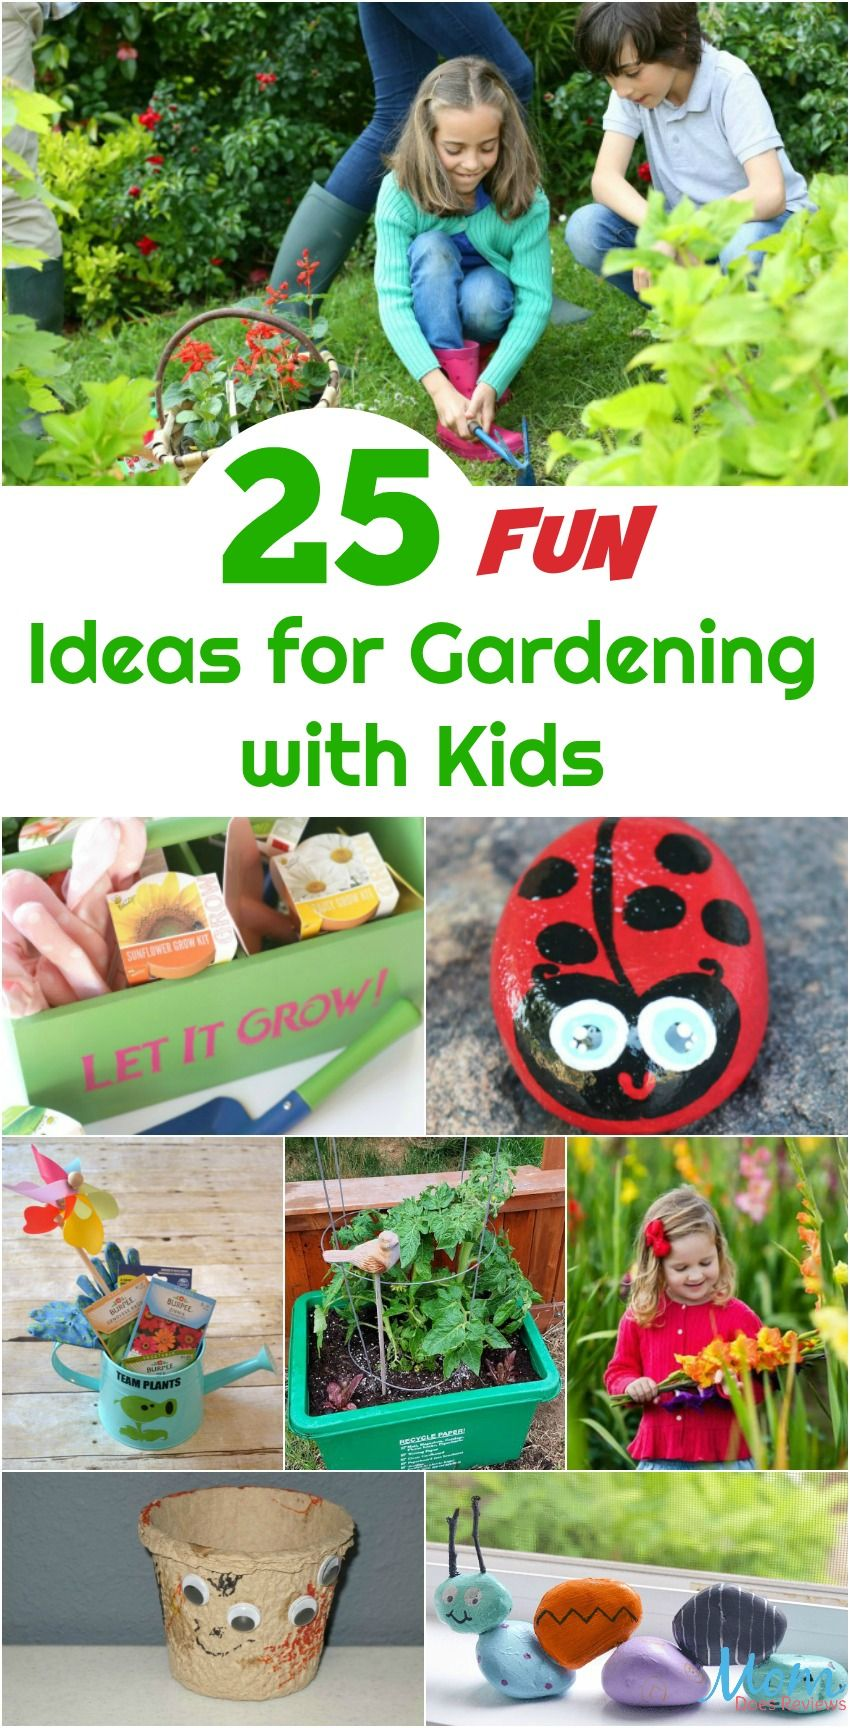 25 Fun Ideas For Gardening With Kids To Spark Their Interest